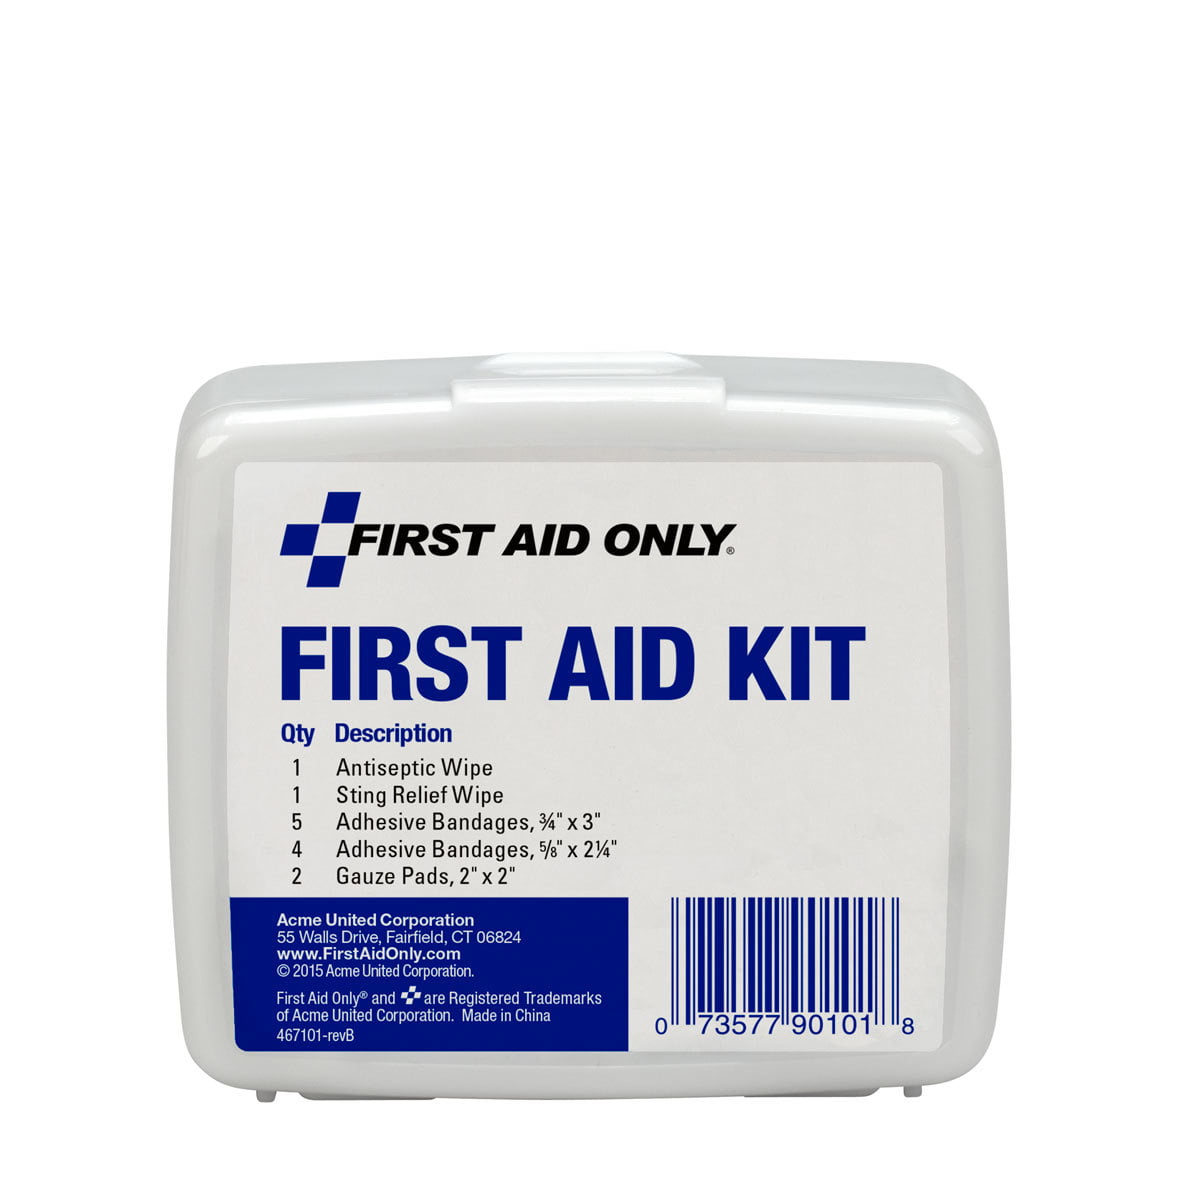 First Aid Only 13 Piece Personal First Aid Kit by ACME UNITED CORPORATION